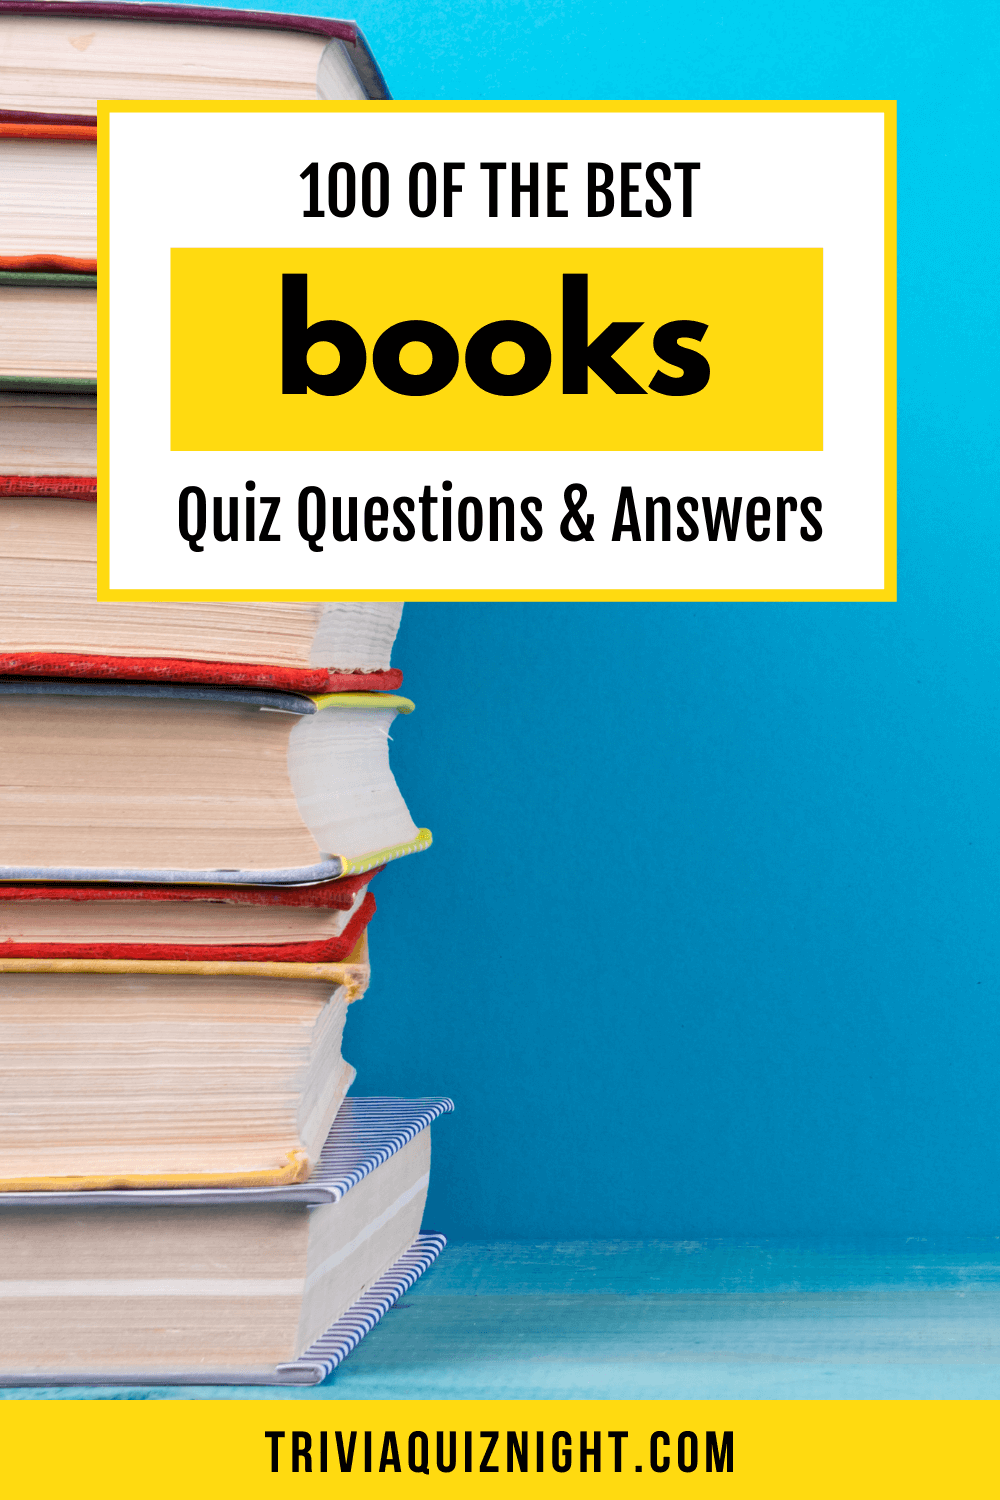 100 of the best books quiz questions and answers